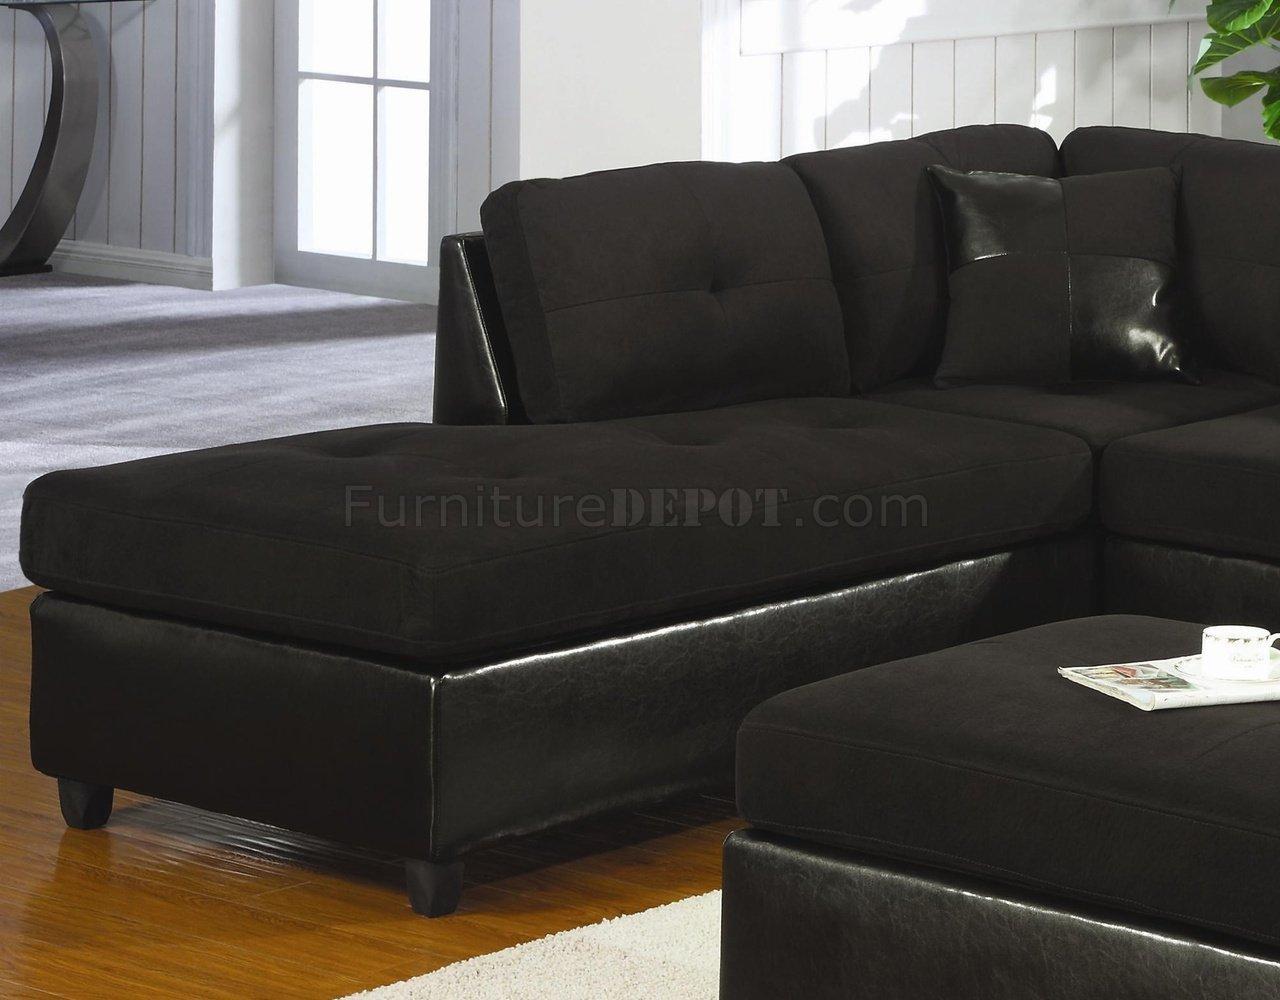 Microfiber & Faux Leather Contemporary Sectional Sofa 500735 Black With Black Microfiber Sectional Sofas (View 4 of 20)